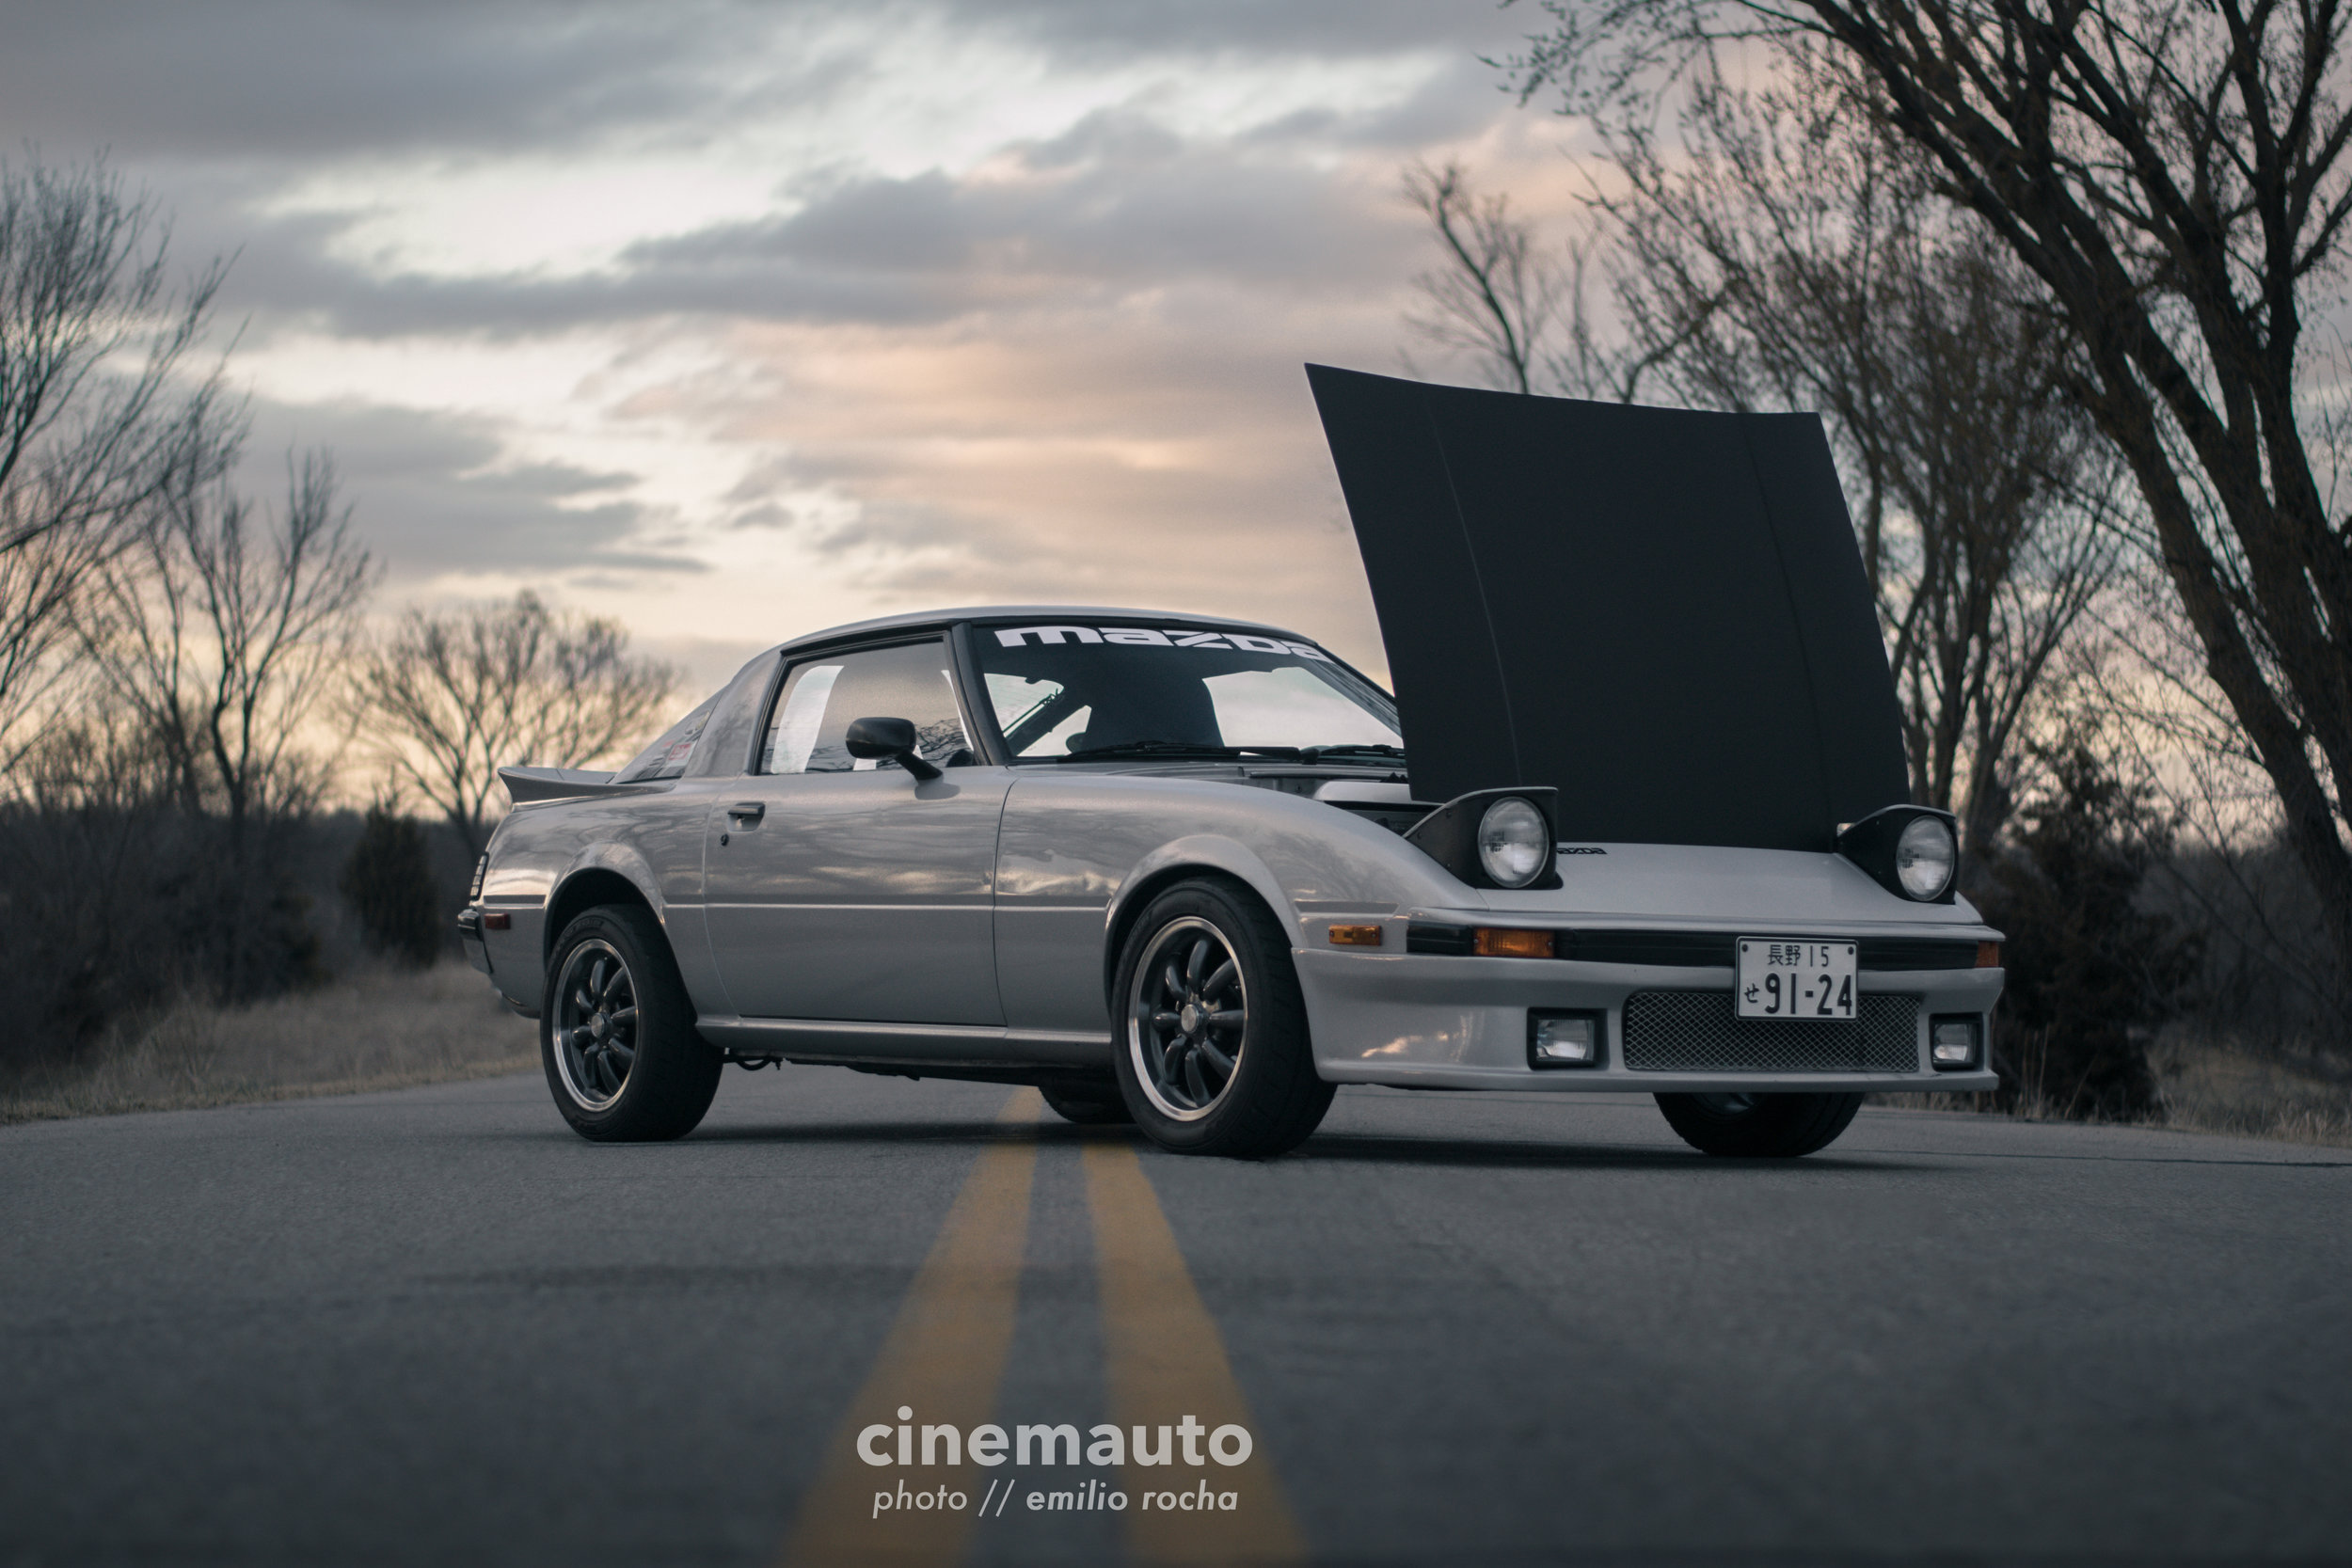 Cinemauto-RX7-30-3.jpg